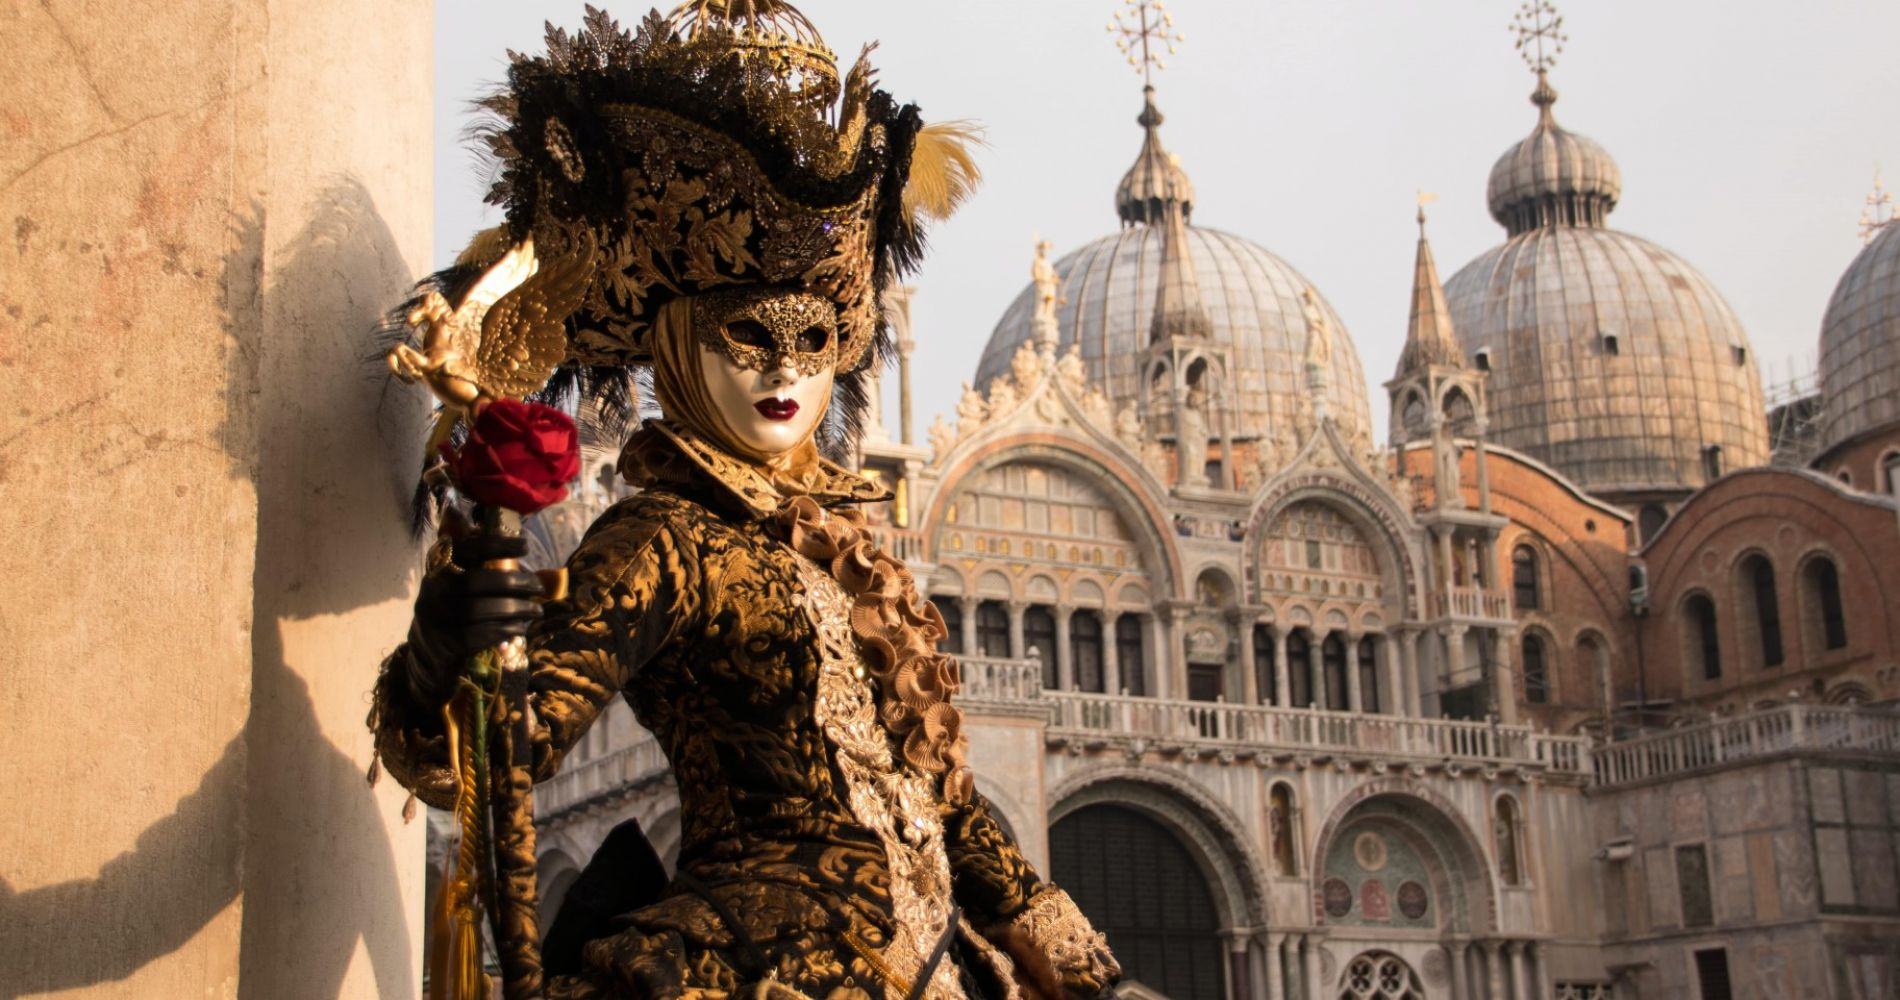 Visit Venice during the world famous carnival